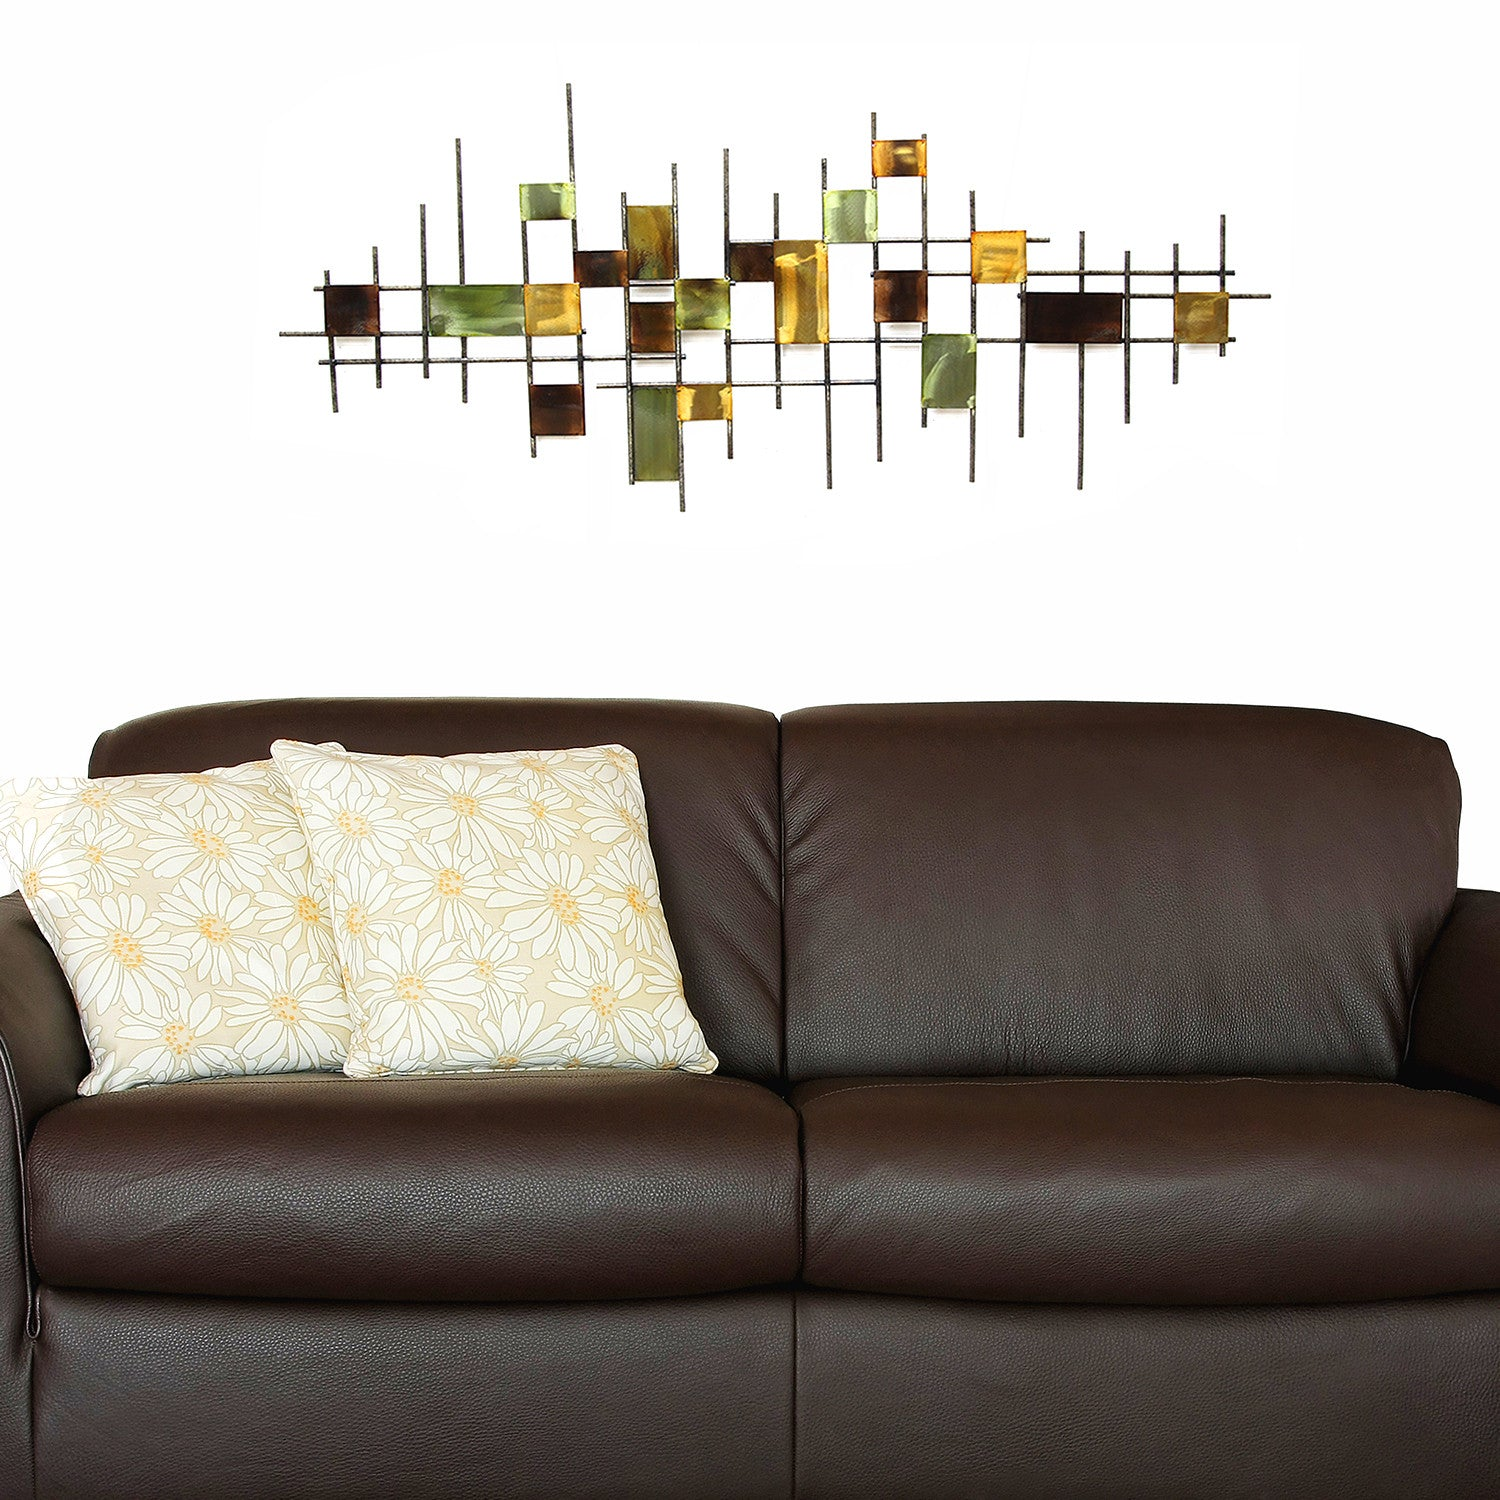 Modern Geometric Statement Wall Dcor Stratton Home Decor